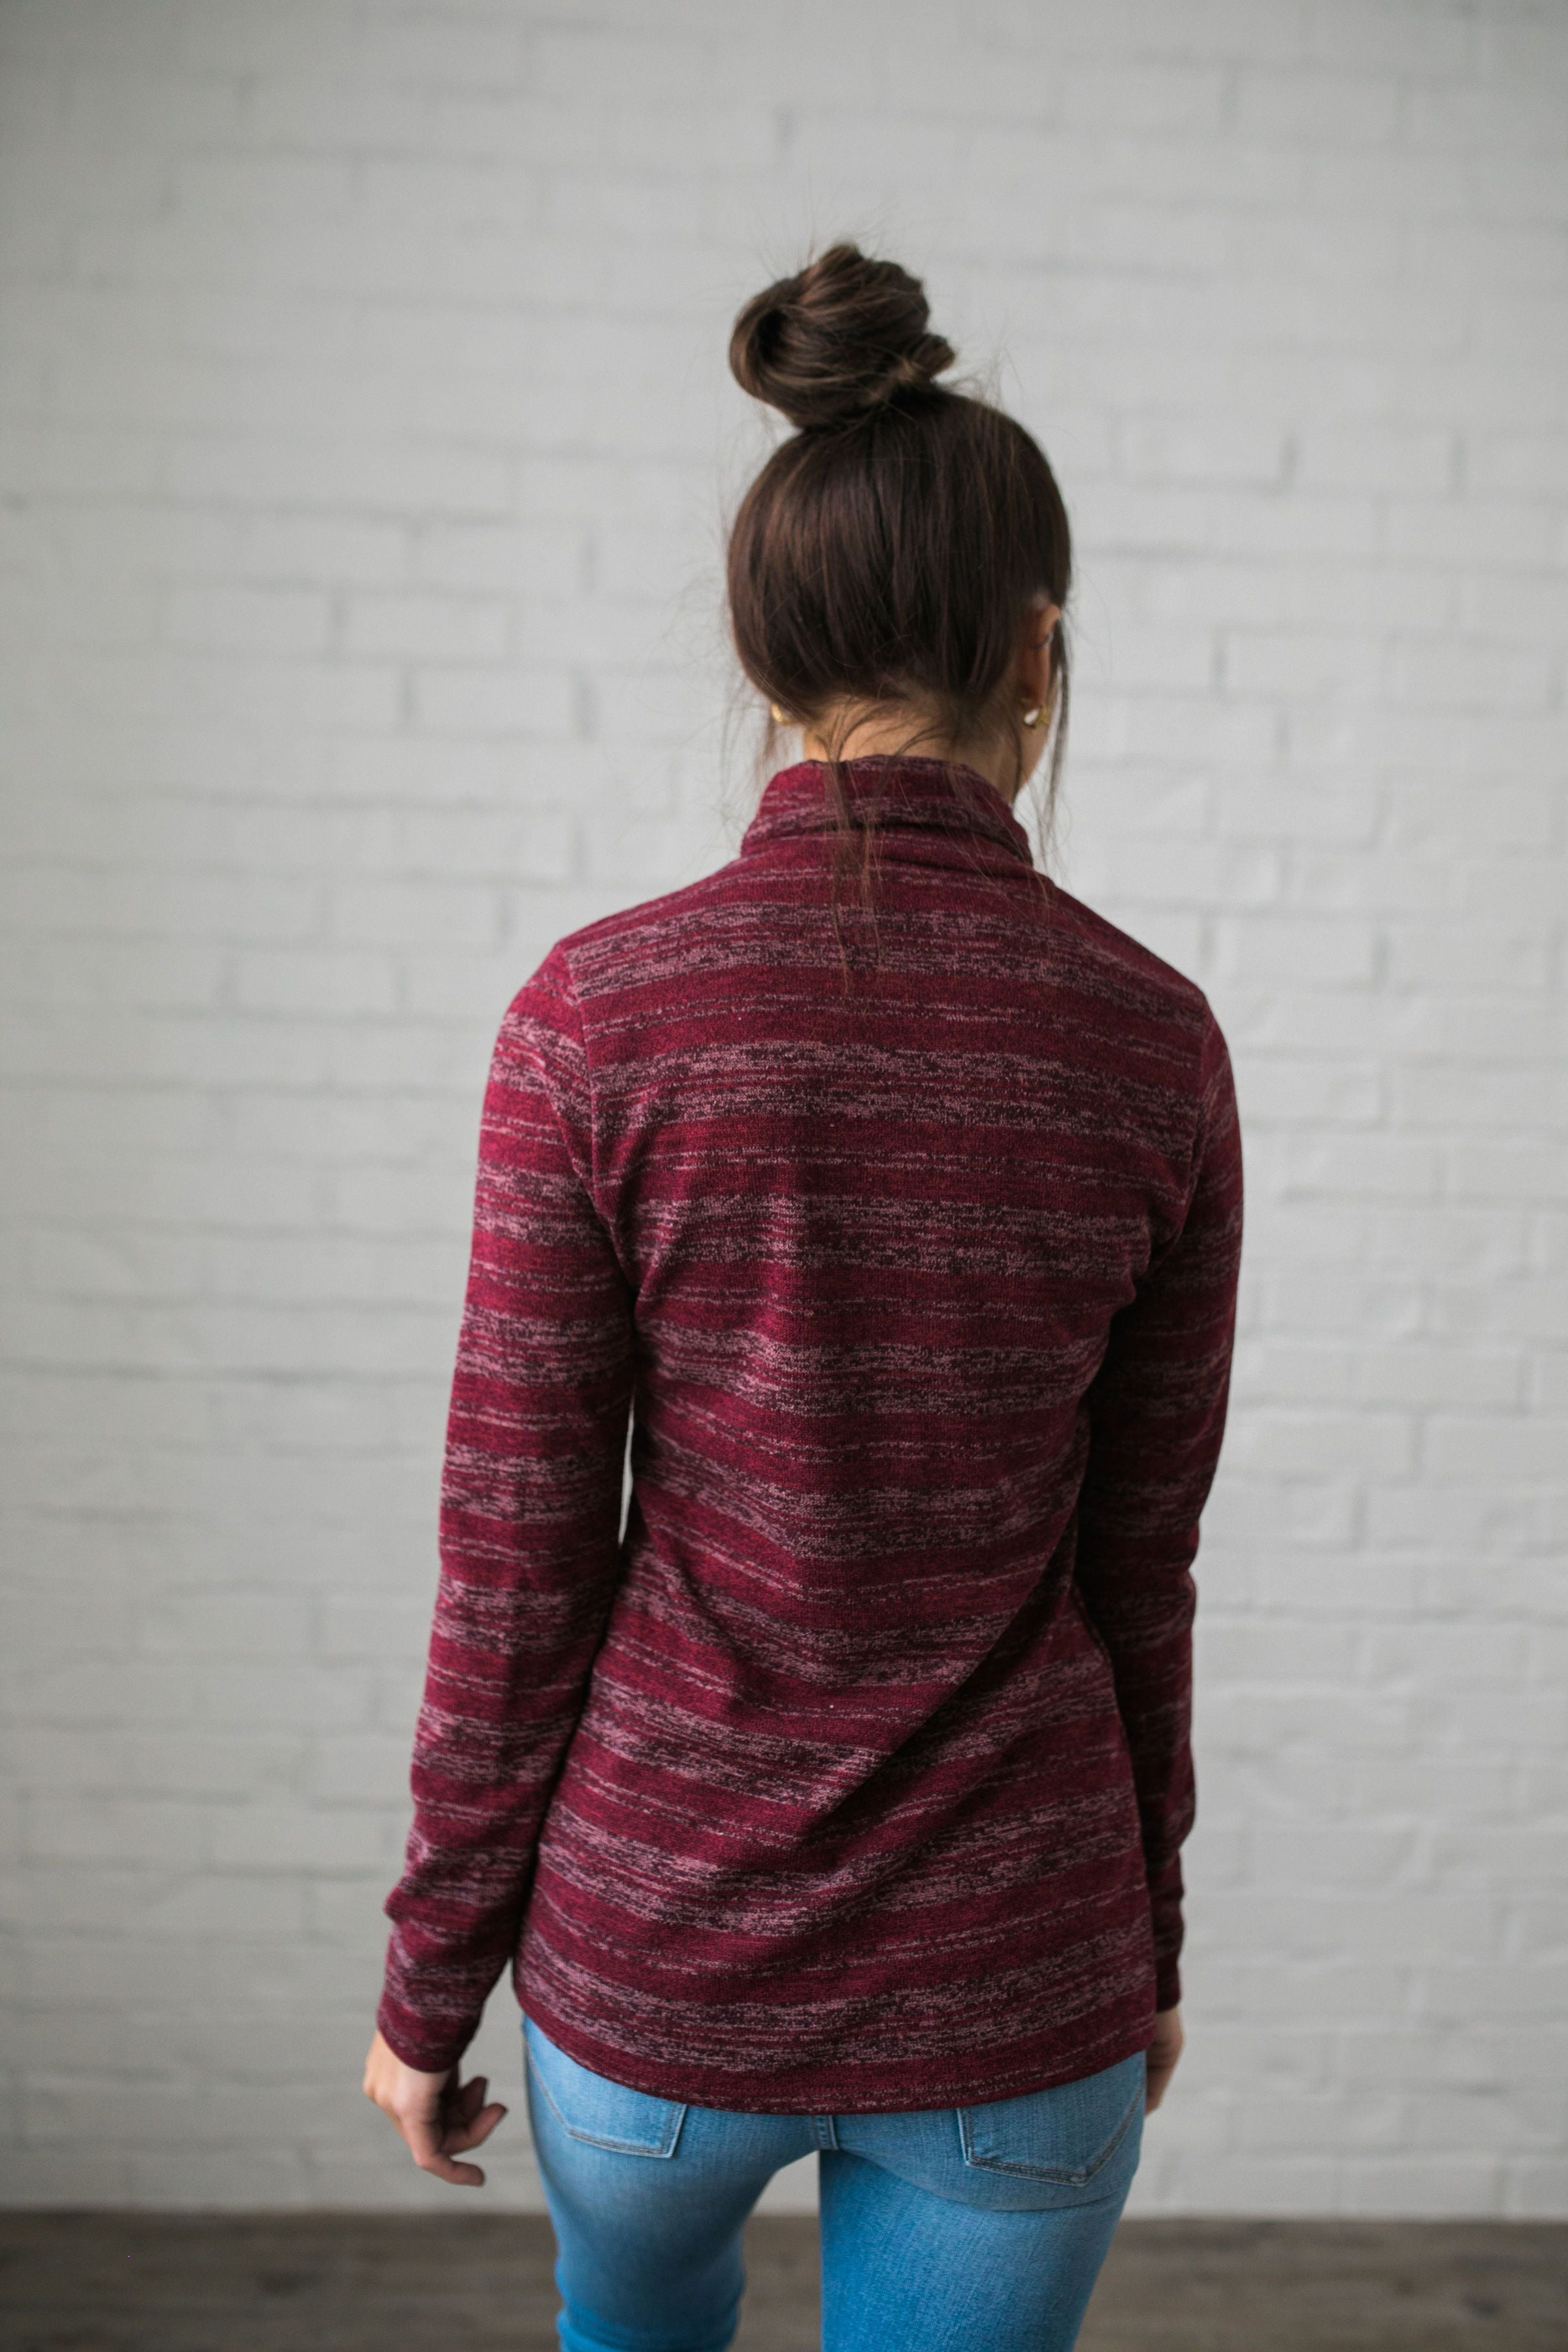 Portland Striped Turtleneck In Wine - ALL SALES FINAL